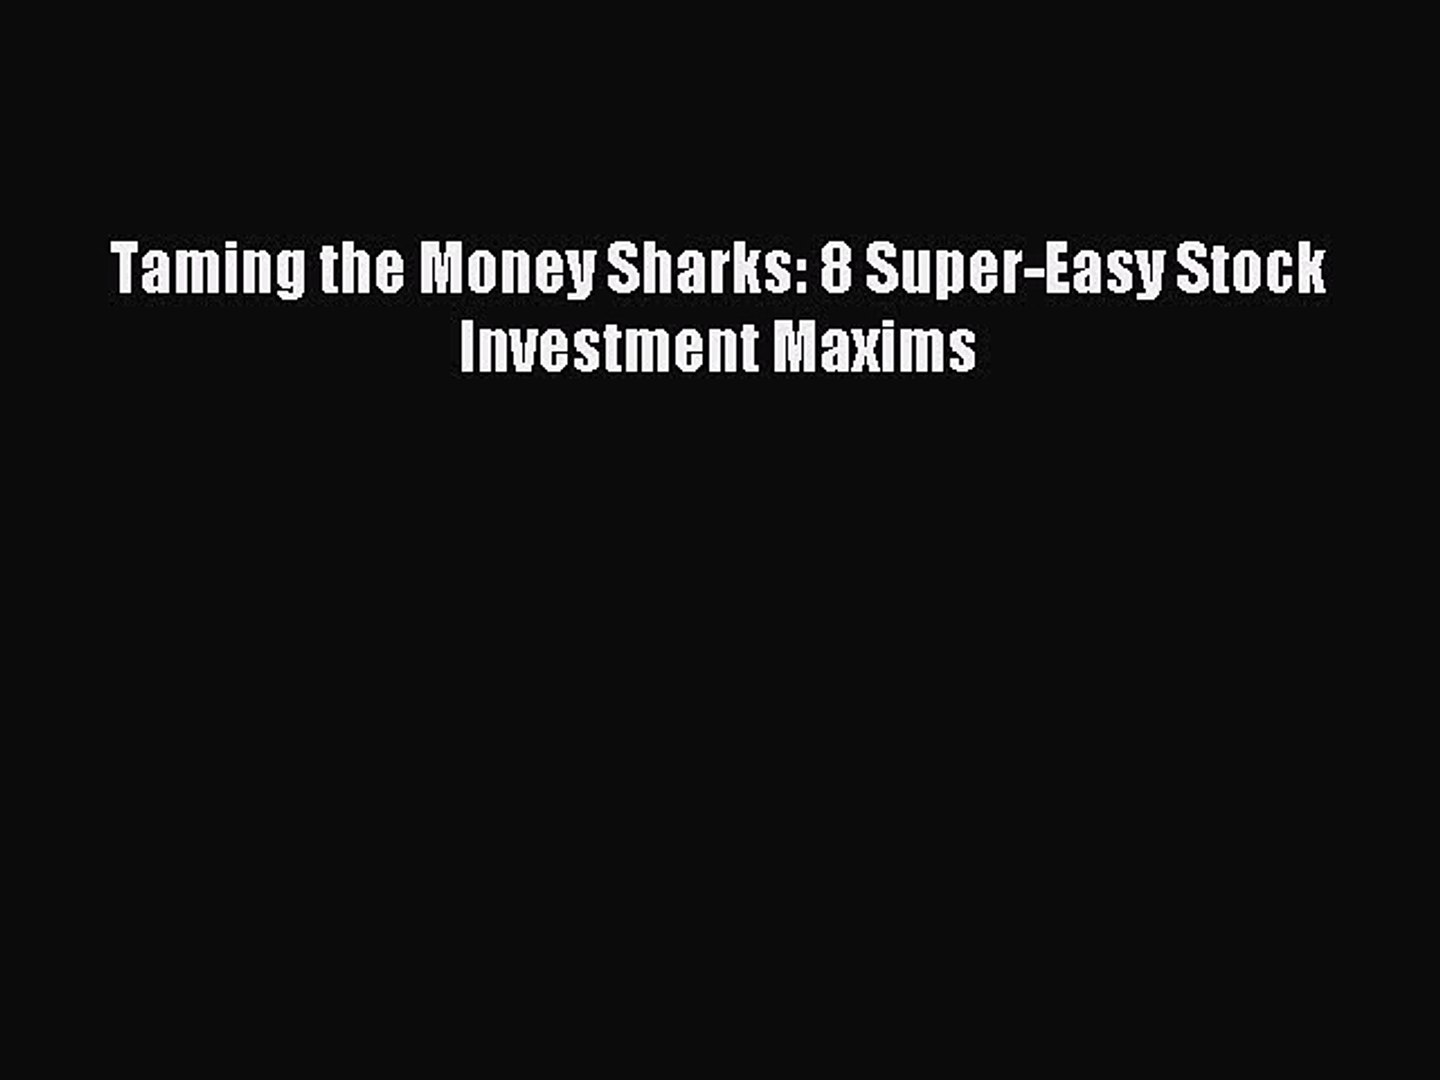 Download Taming the Money Sharks: 8 Super-Easy Stock Investment Maxims  Read Online